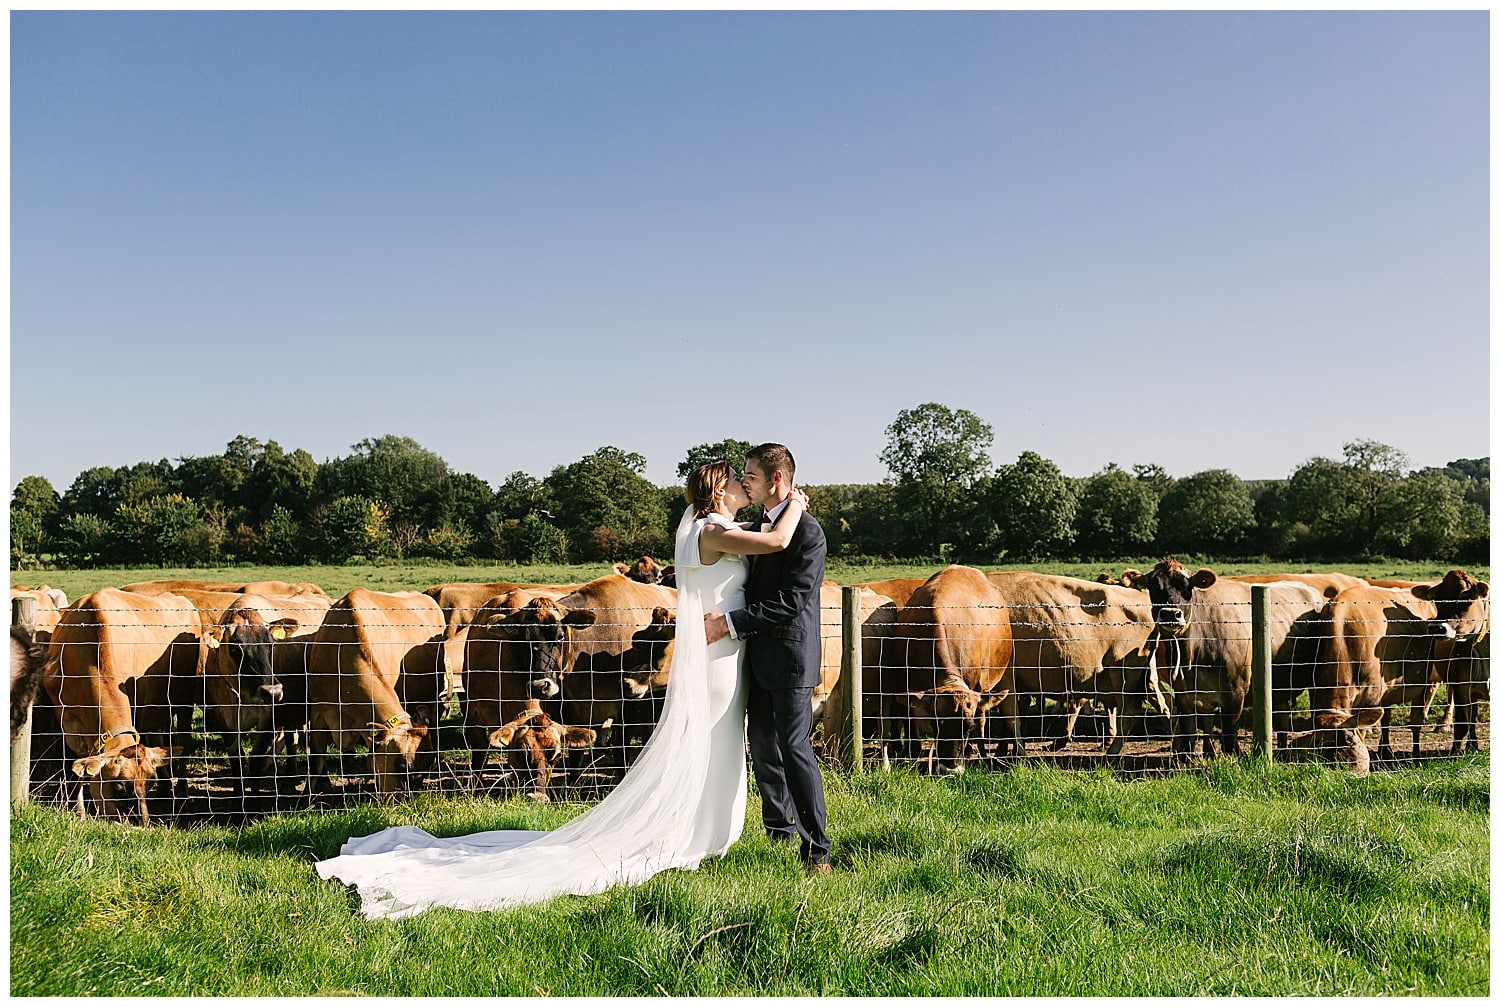 Staffordshire wedding photography; newly married farmer couple with their cows